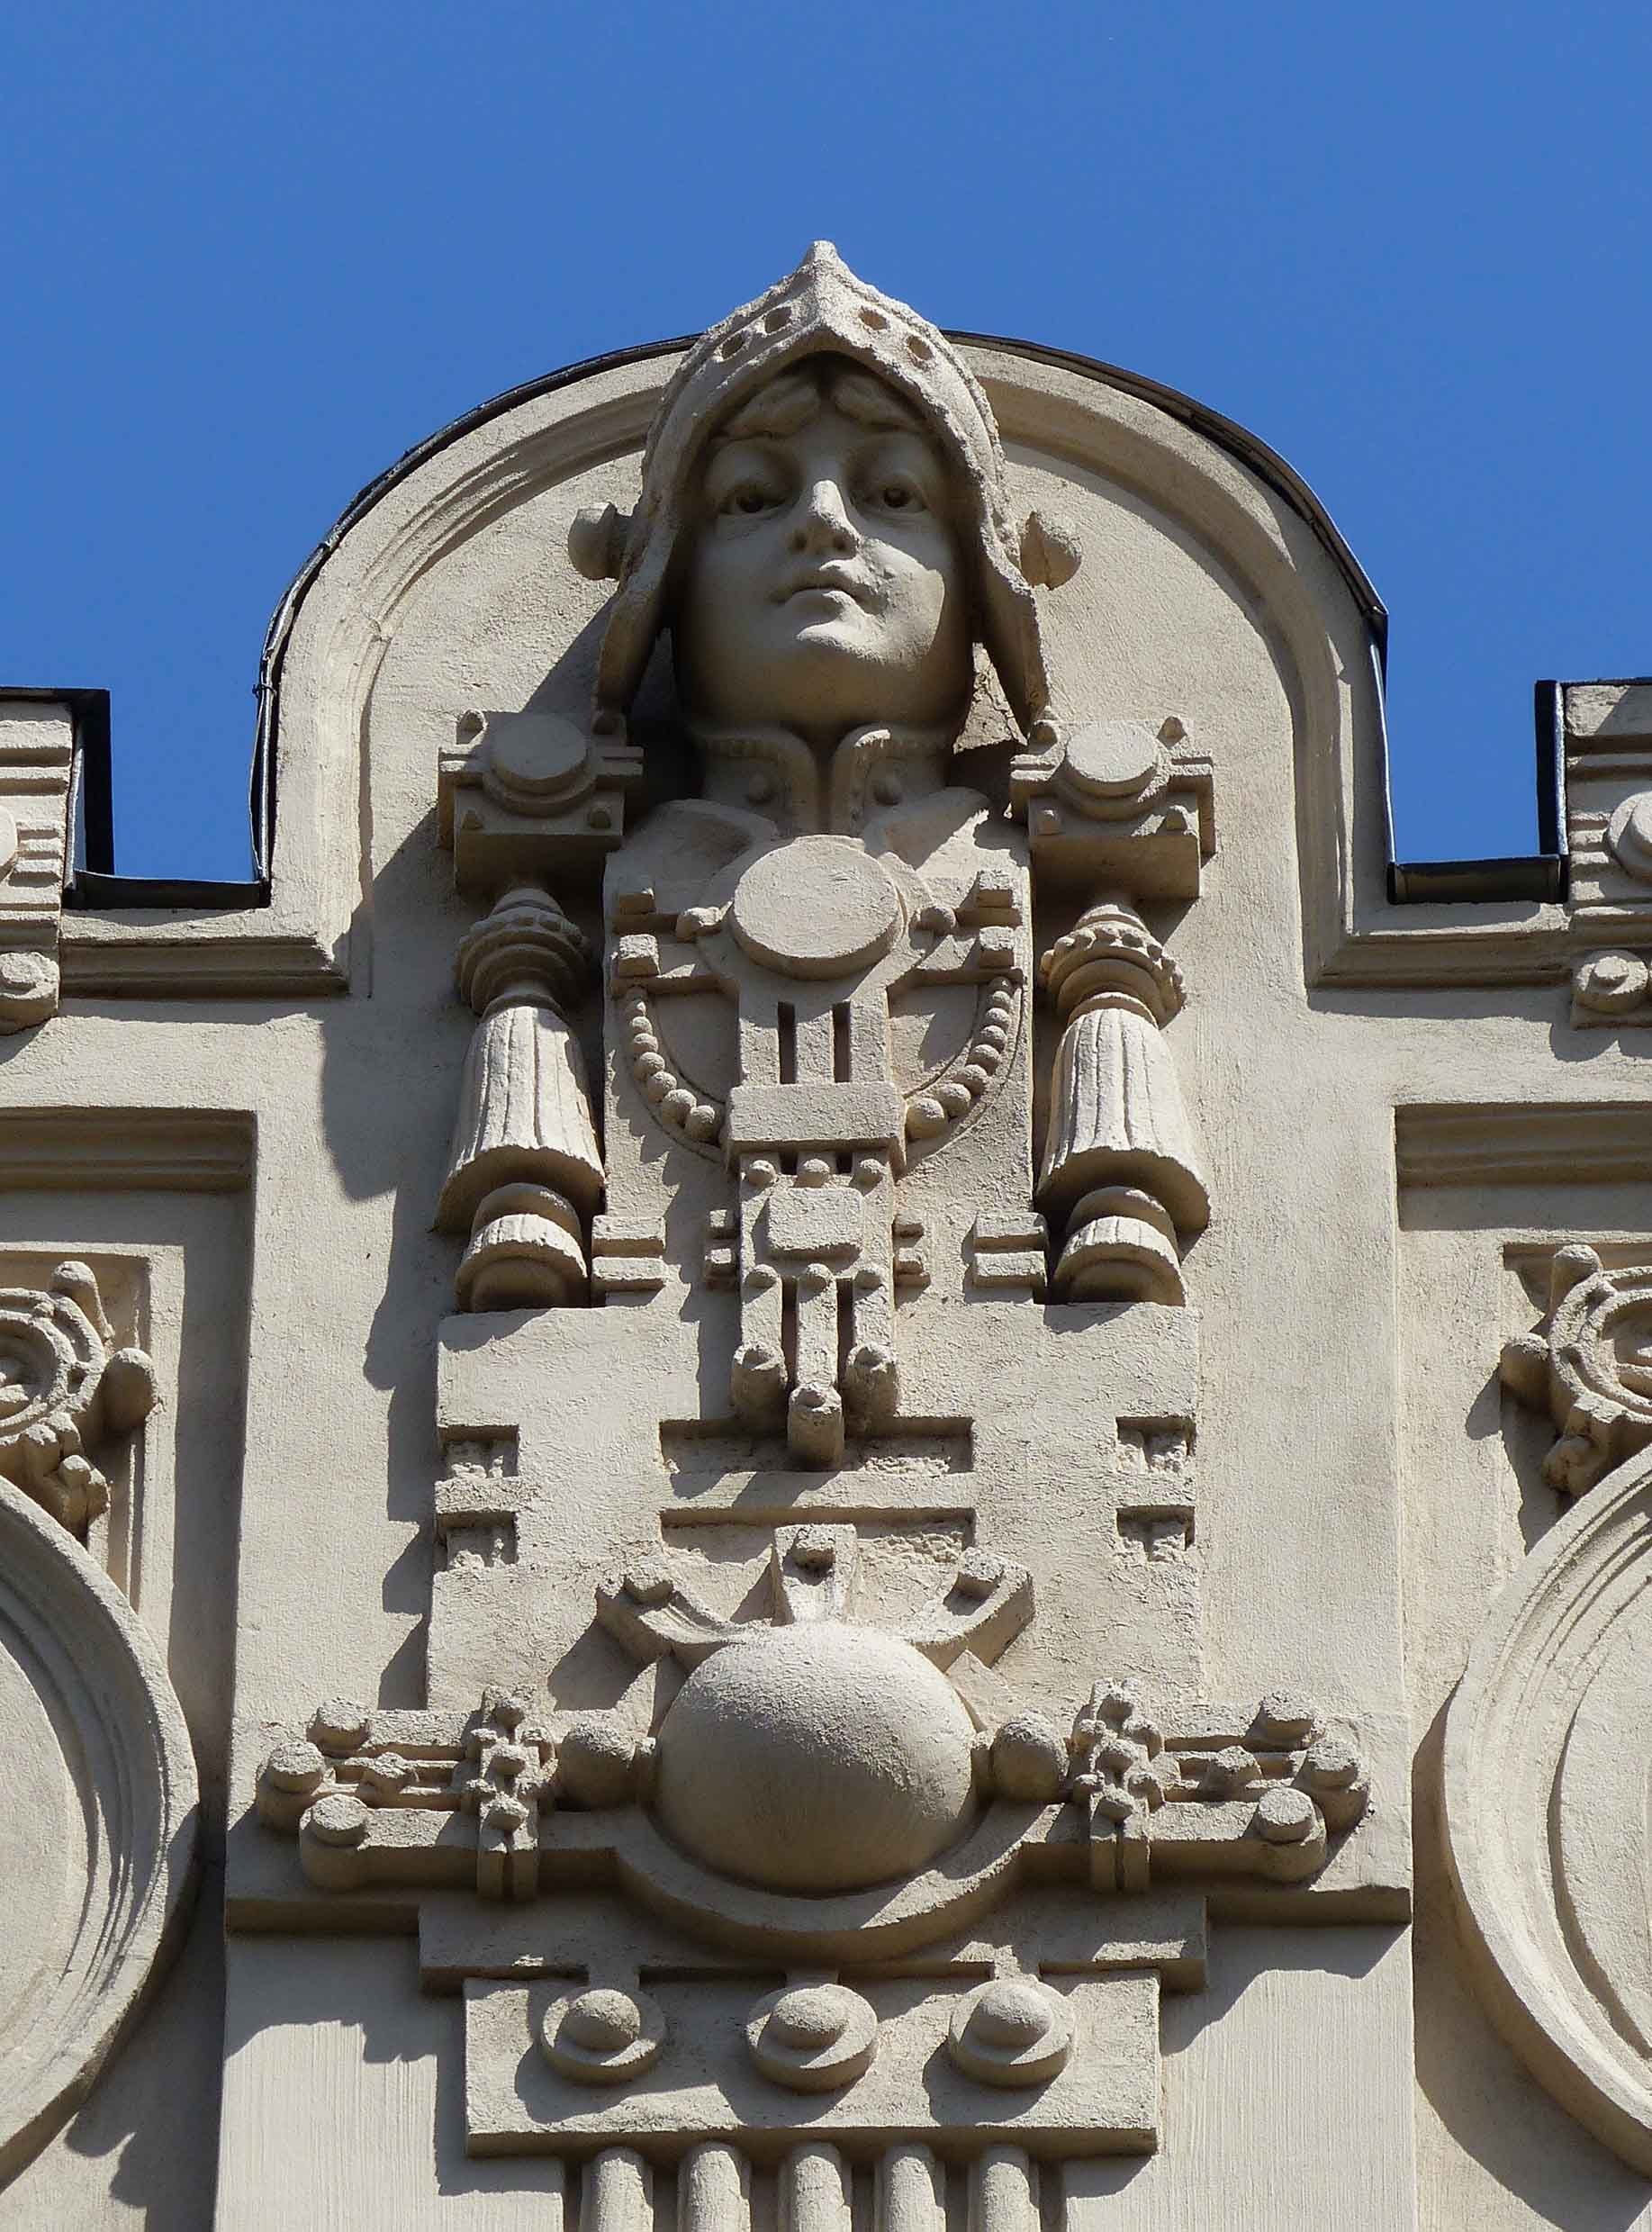 Elaborate carvings at the top of a building